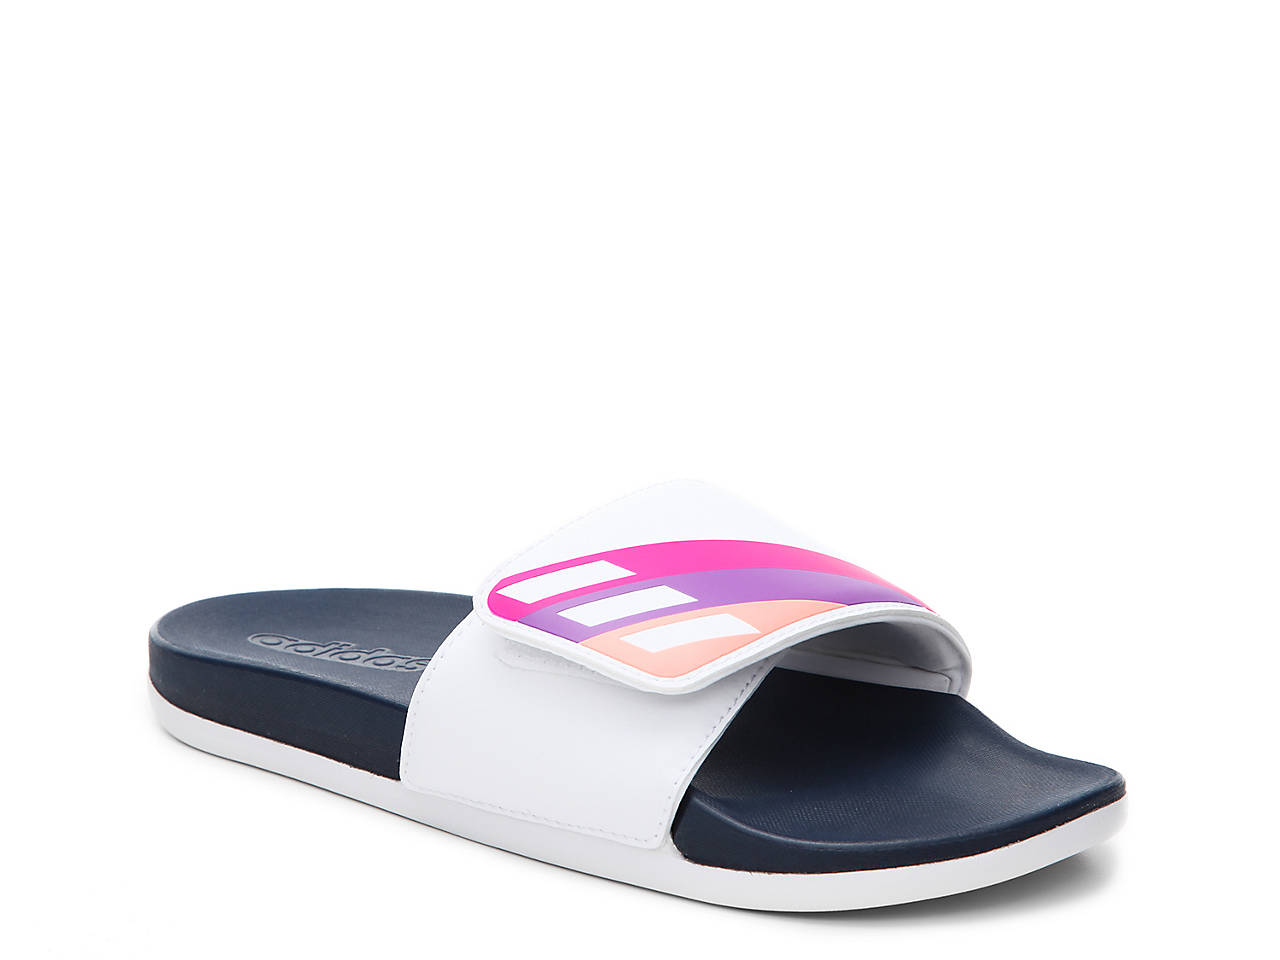 b2c0bbf078cf adidas Adilette Cloudfoam Ultra Adjustable Slide Sandal Women s ...